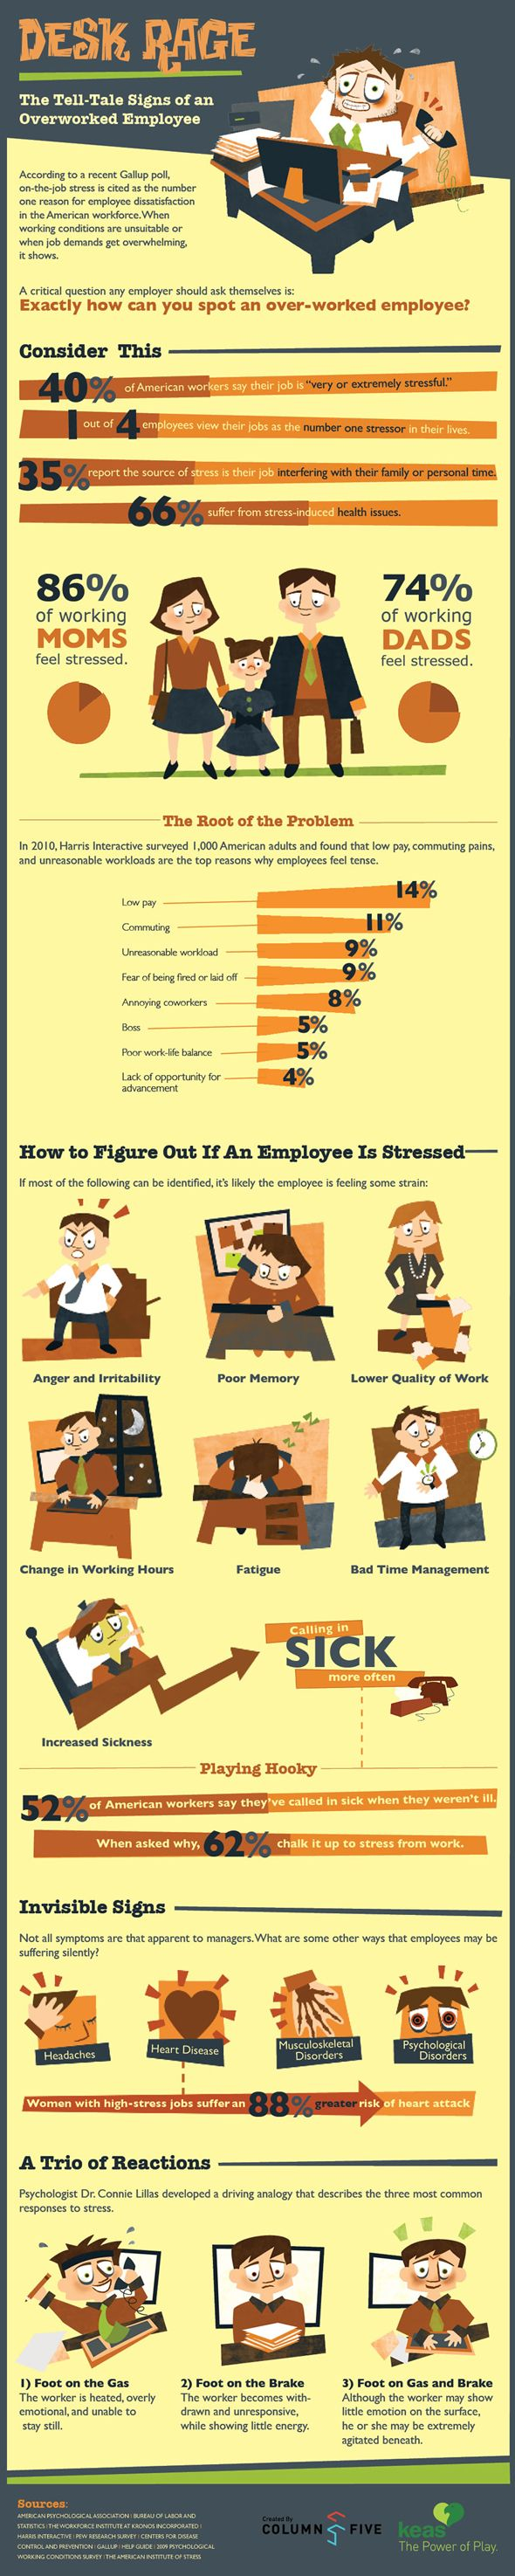 INFOGRAPHIC: The Tell-All Signs Of An Overworked Employee  -  found at http://www.businessinsider.com/ what-an-overworked-employee-looks-like-2012-5